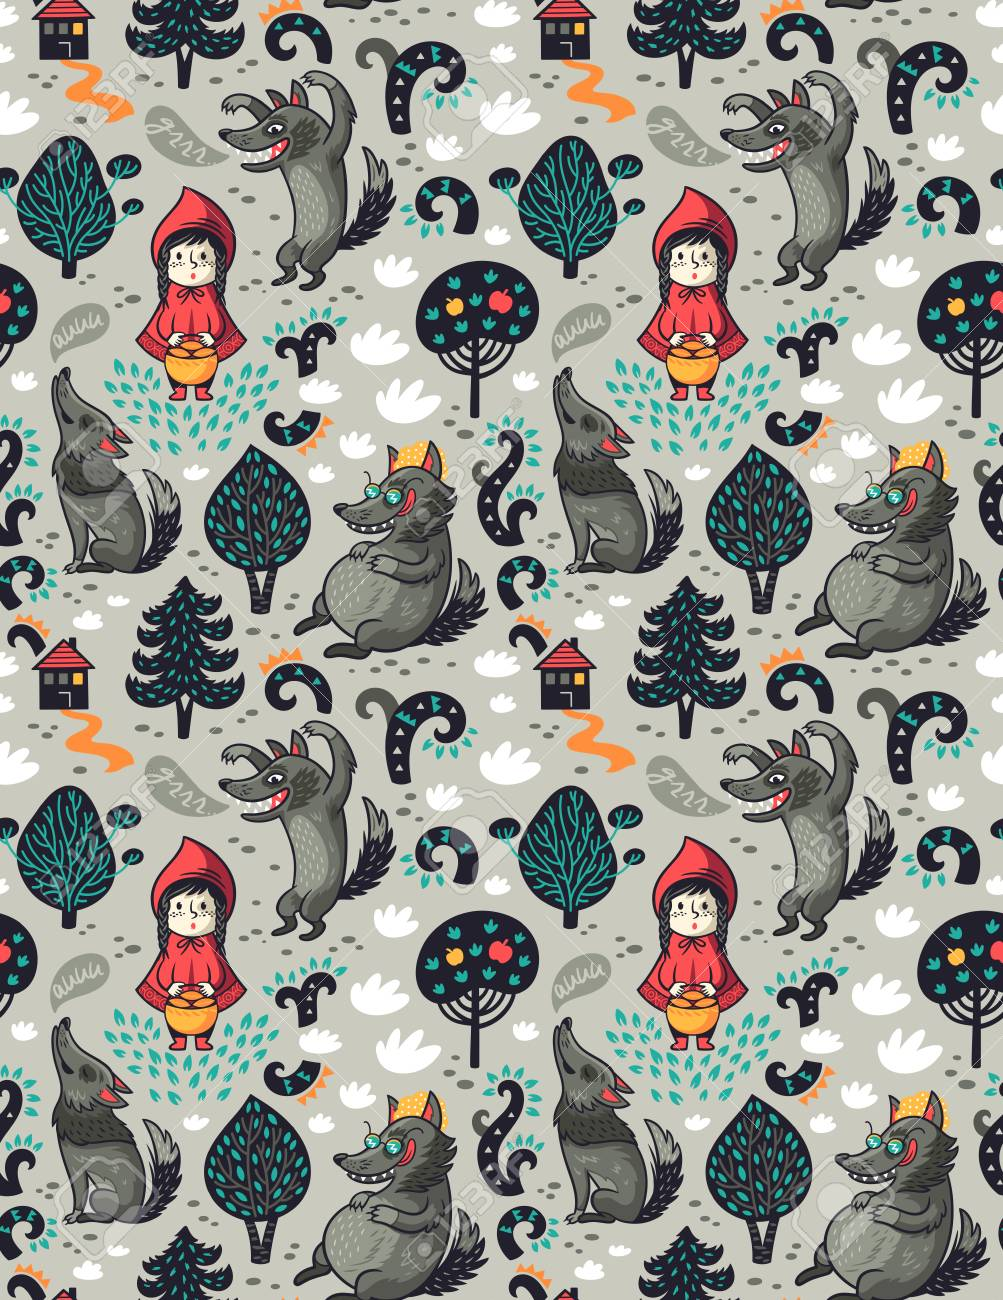 Little red riding hood seamless pattern and gray hungry wolf in the forest. Fairytale imagination background. - 95928256